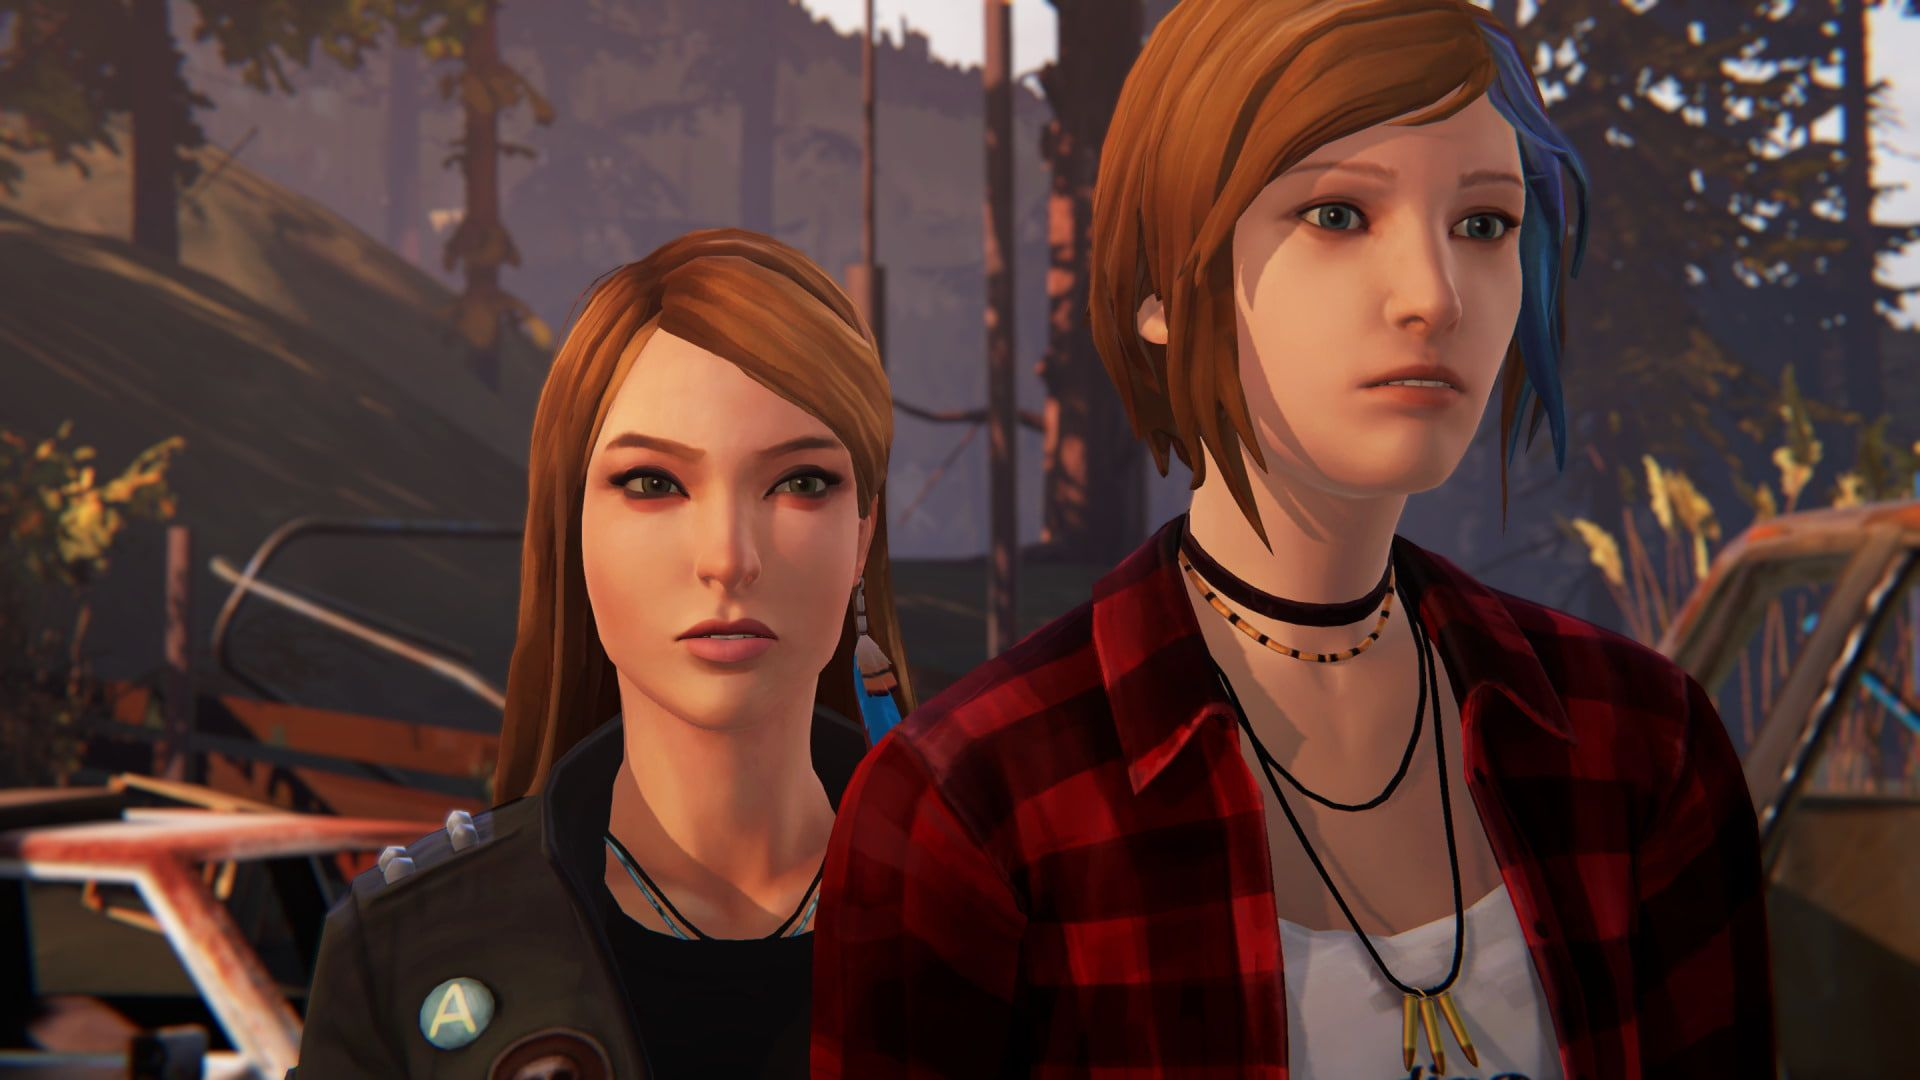 Life Is Strange Life Is Strange Before The Storm Chloe Price Rachel Amber 1080p Wallpaper Hdwallpaper Desktop Chloe Price Life Is Strange Chloe